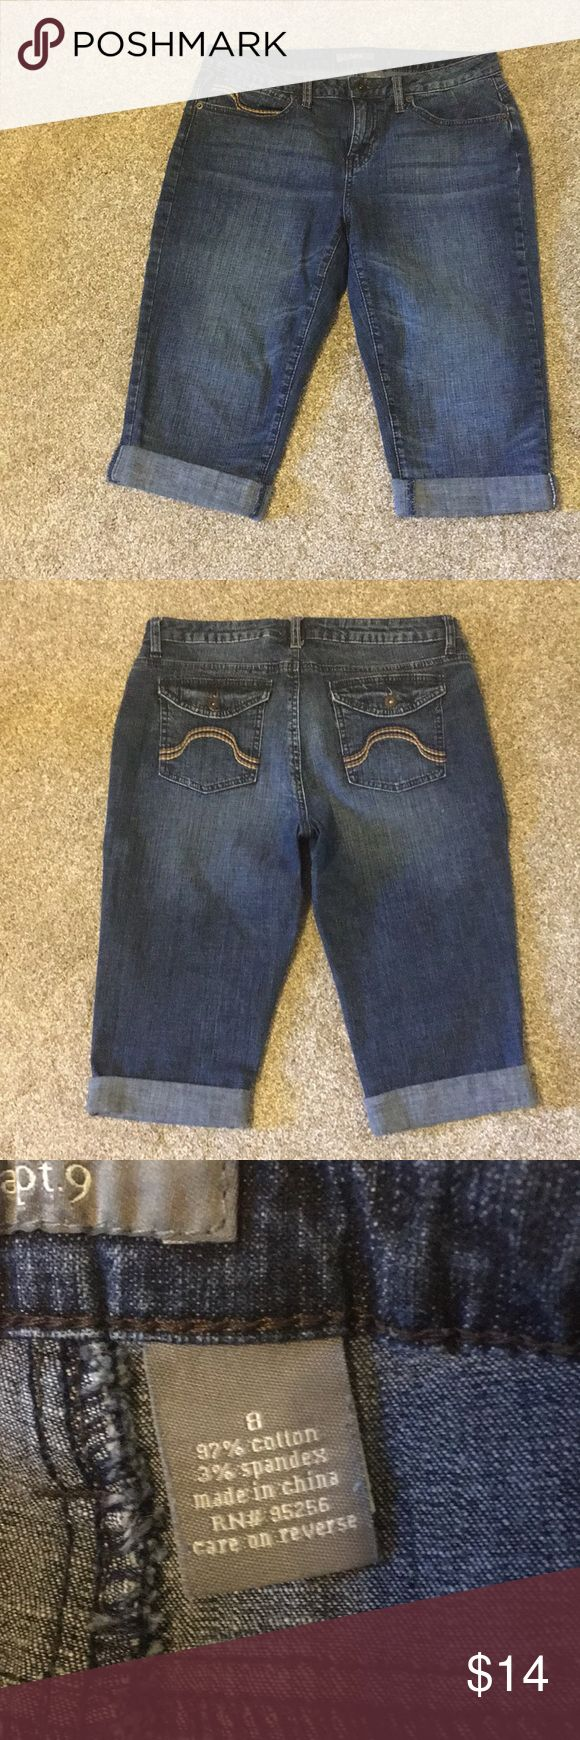 Womens capris Womens Apt 9 denim capris. These are 97% cotton and 3% spandex. Excellent condition. No holes, no snags,  no pets and smoke free home. Apt. 9 Jeans Ankle & Cropped